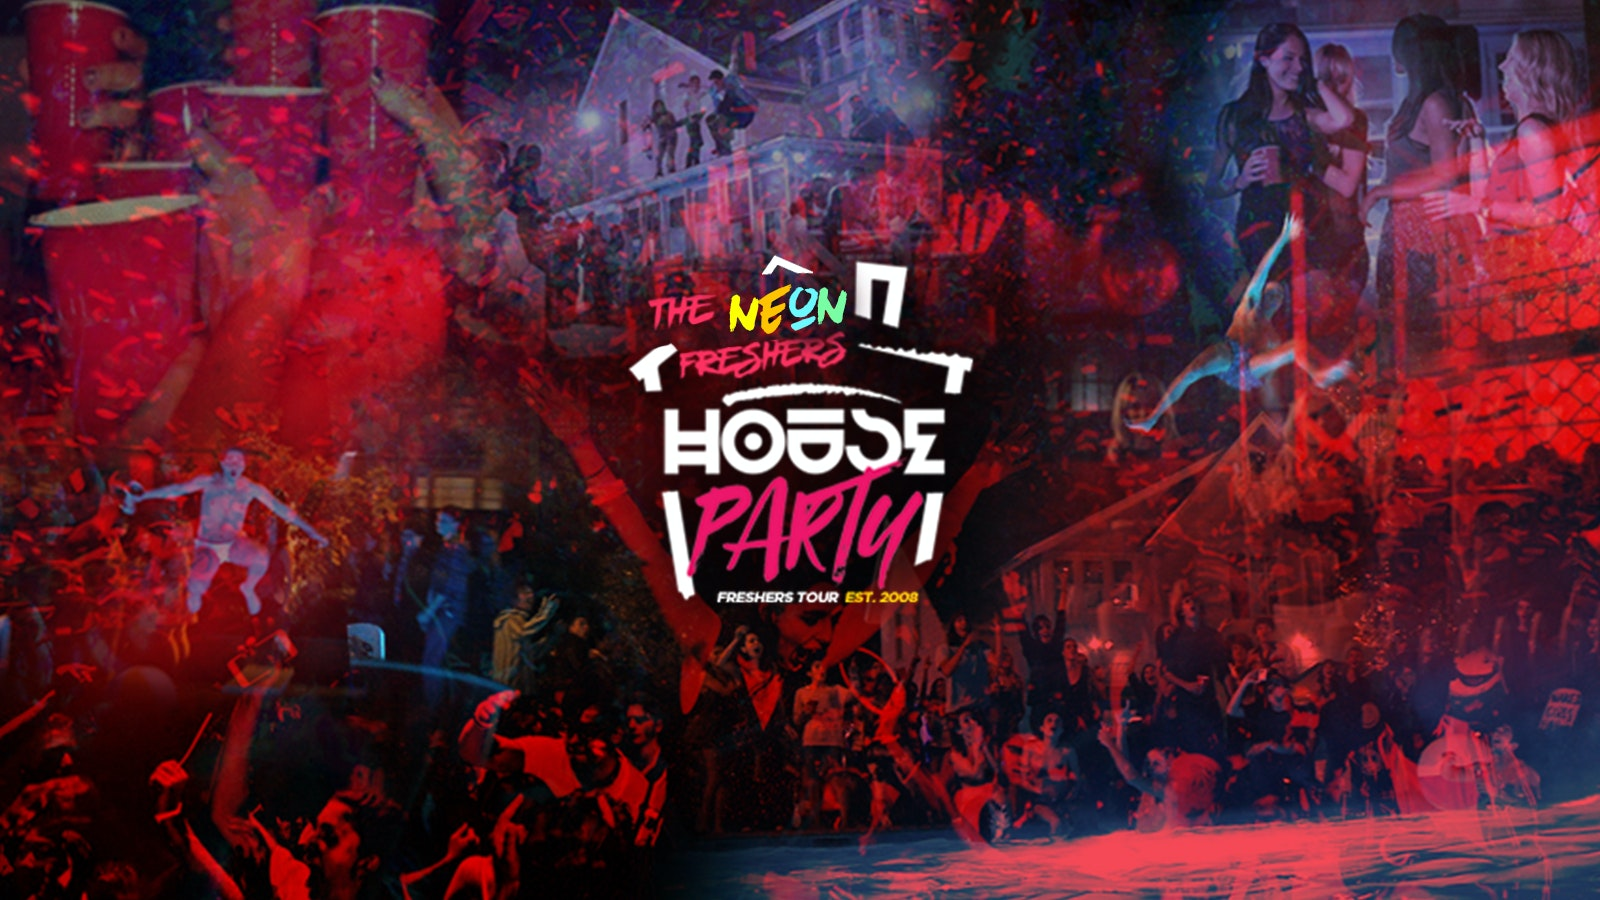 Neon Freshers House Party // Gloucester Freshers 2020